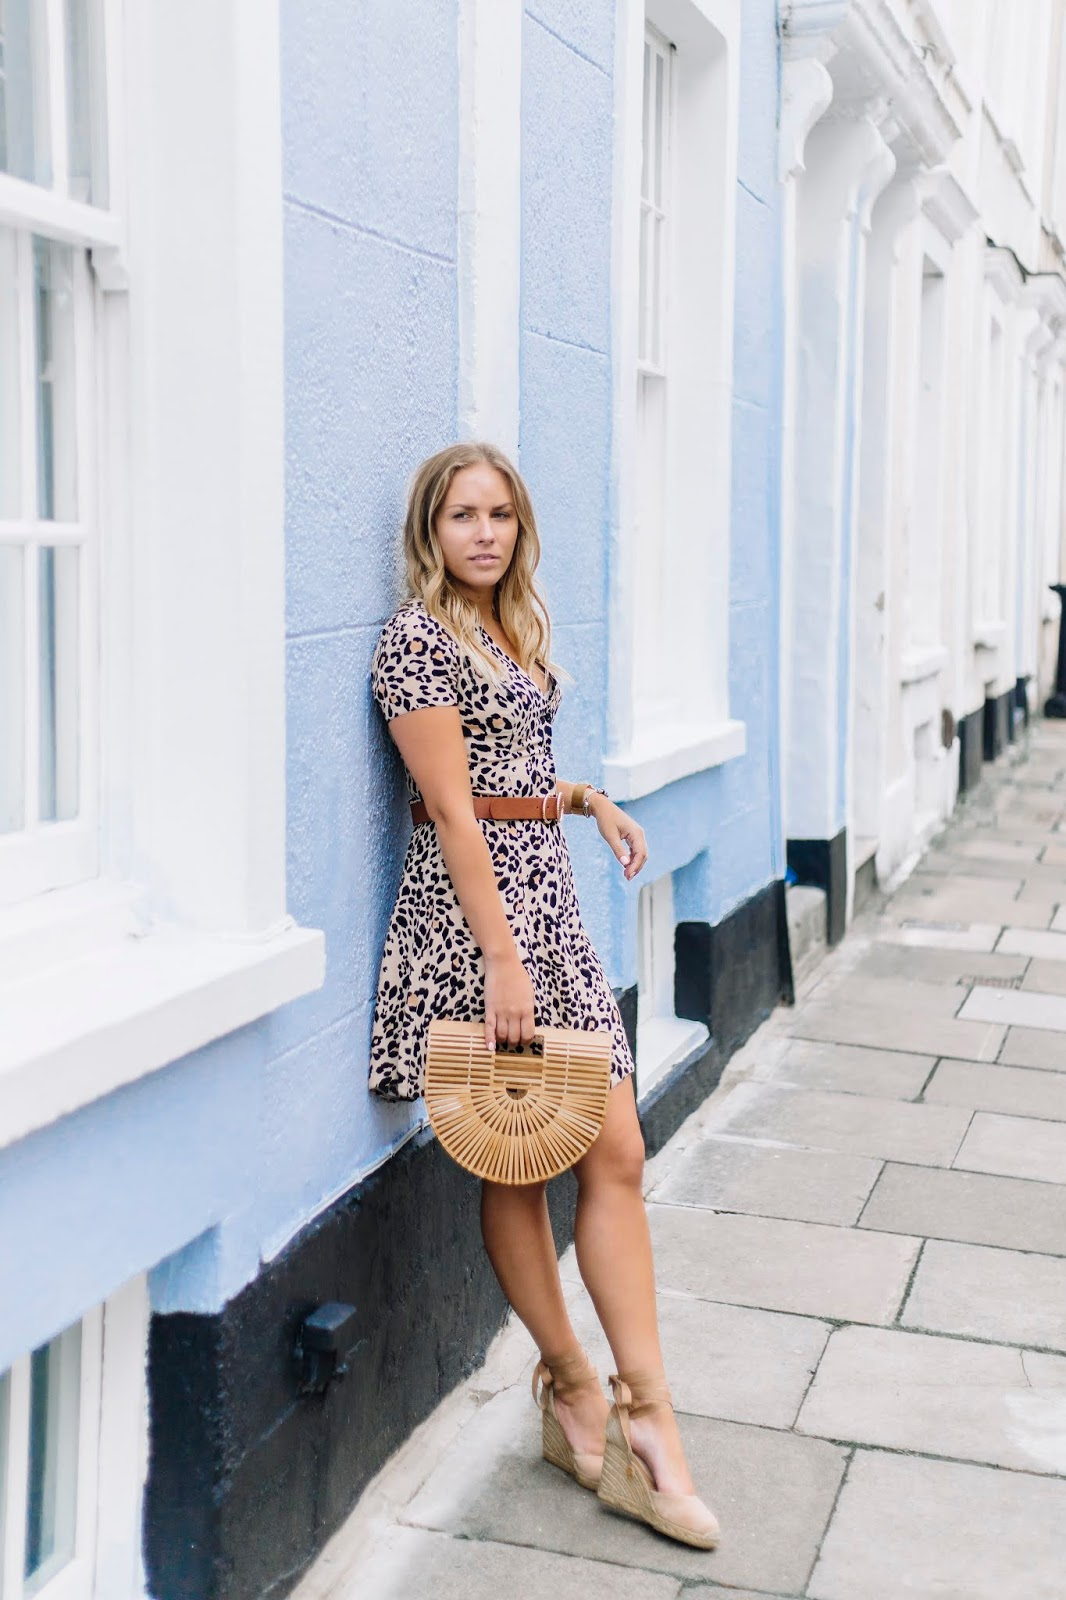 Fashion | How to Wear Leopard Print this Season - Rachel Emily Blog